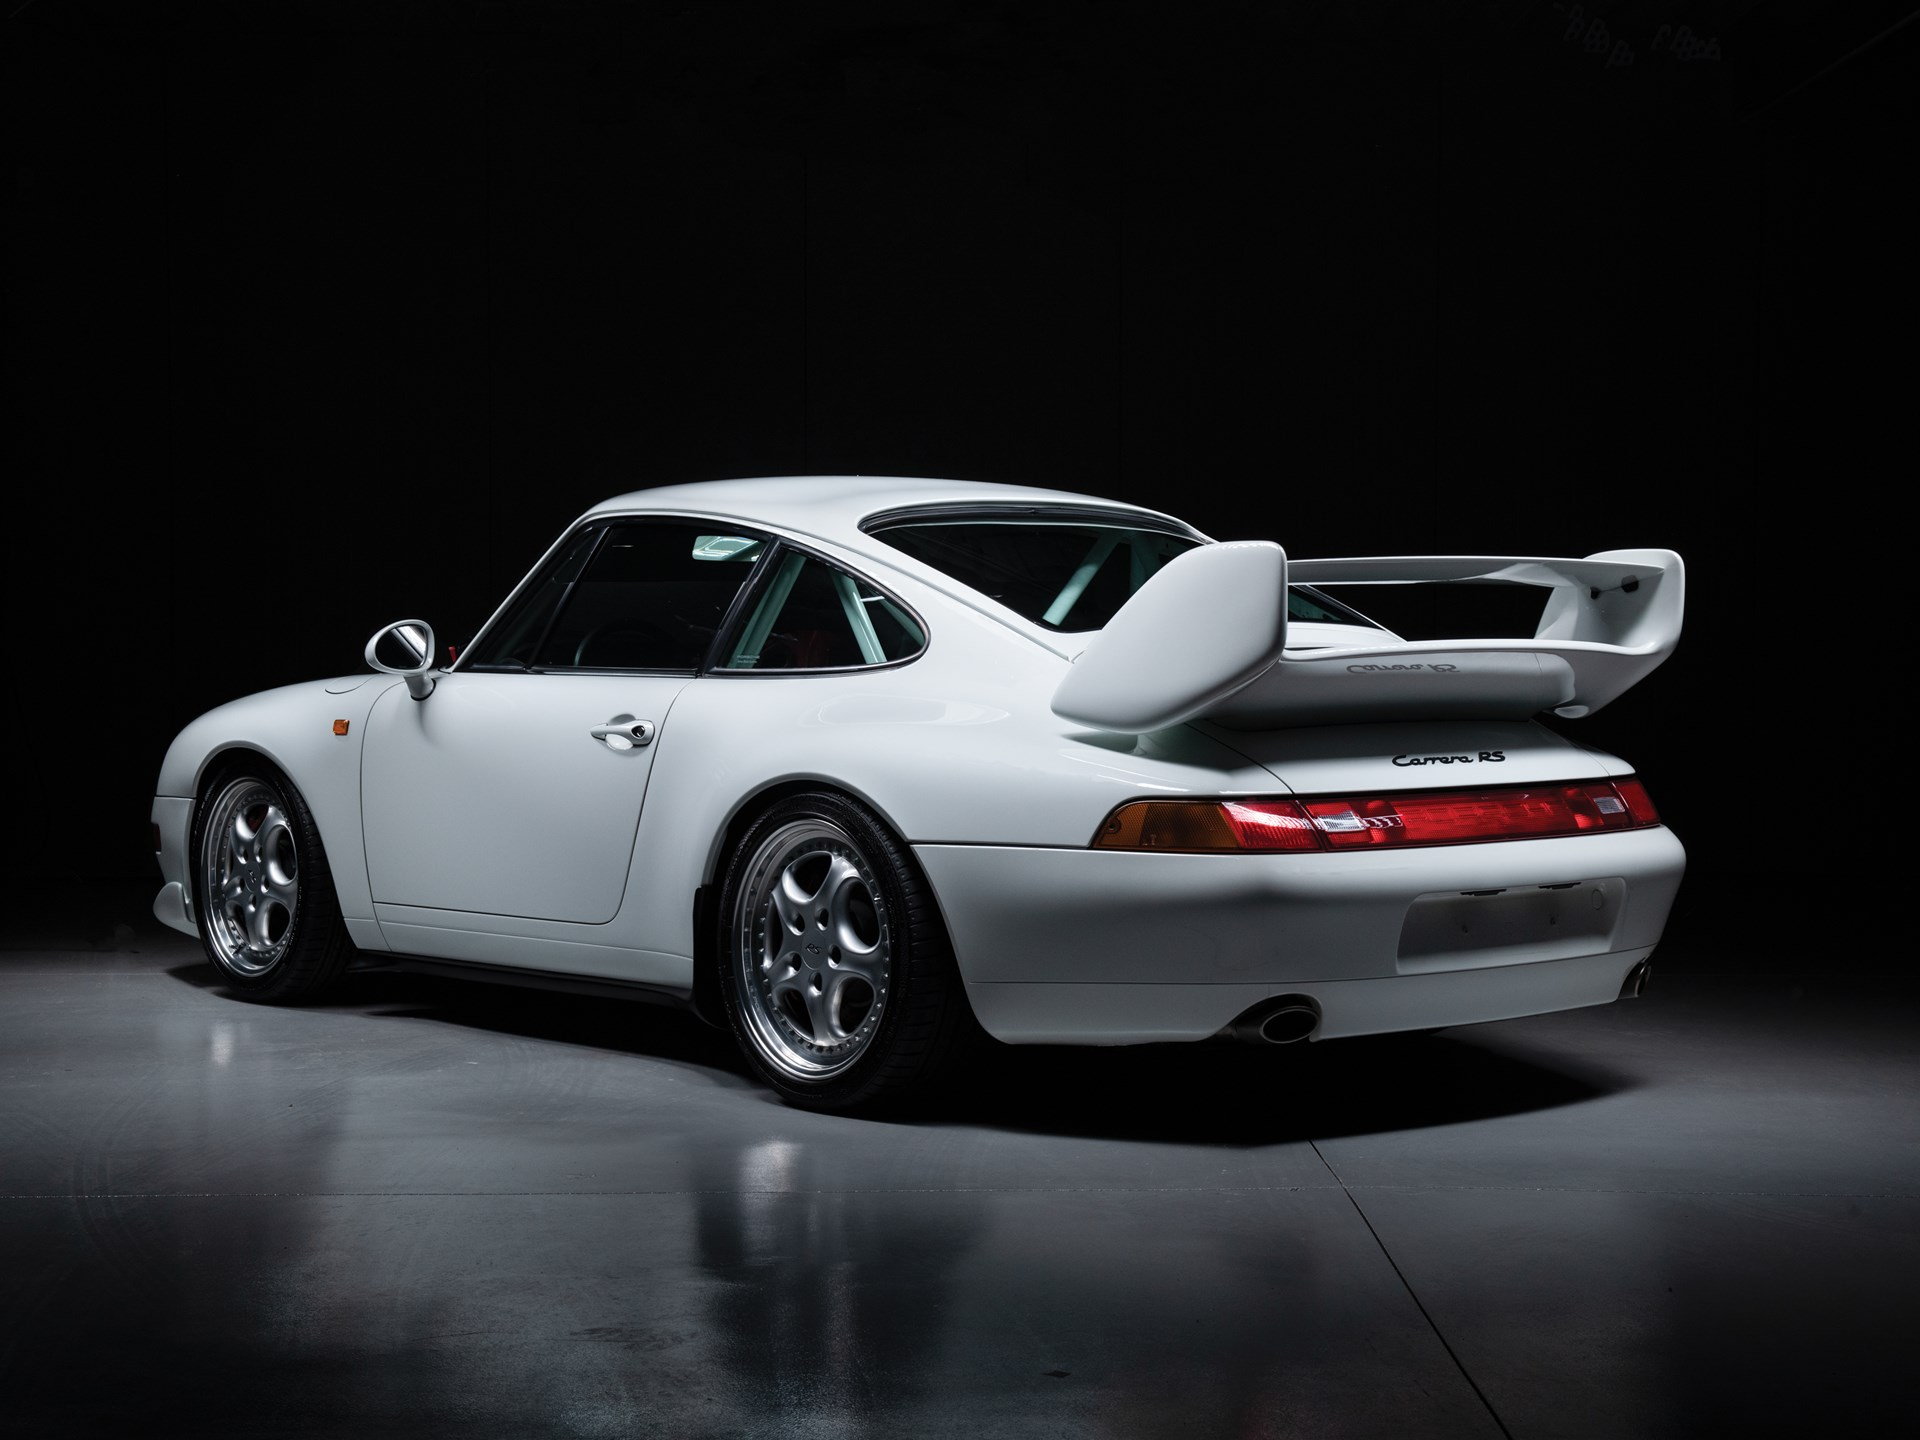 1996 Porsche 911 Carrera RS Clubsport 993 SM Sotheby's Paris 2020 Retromobile